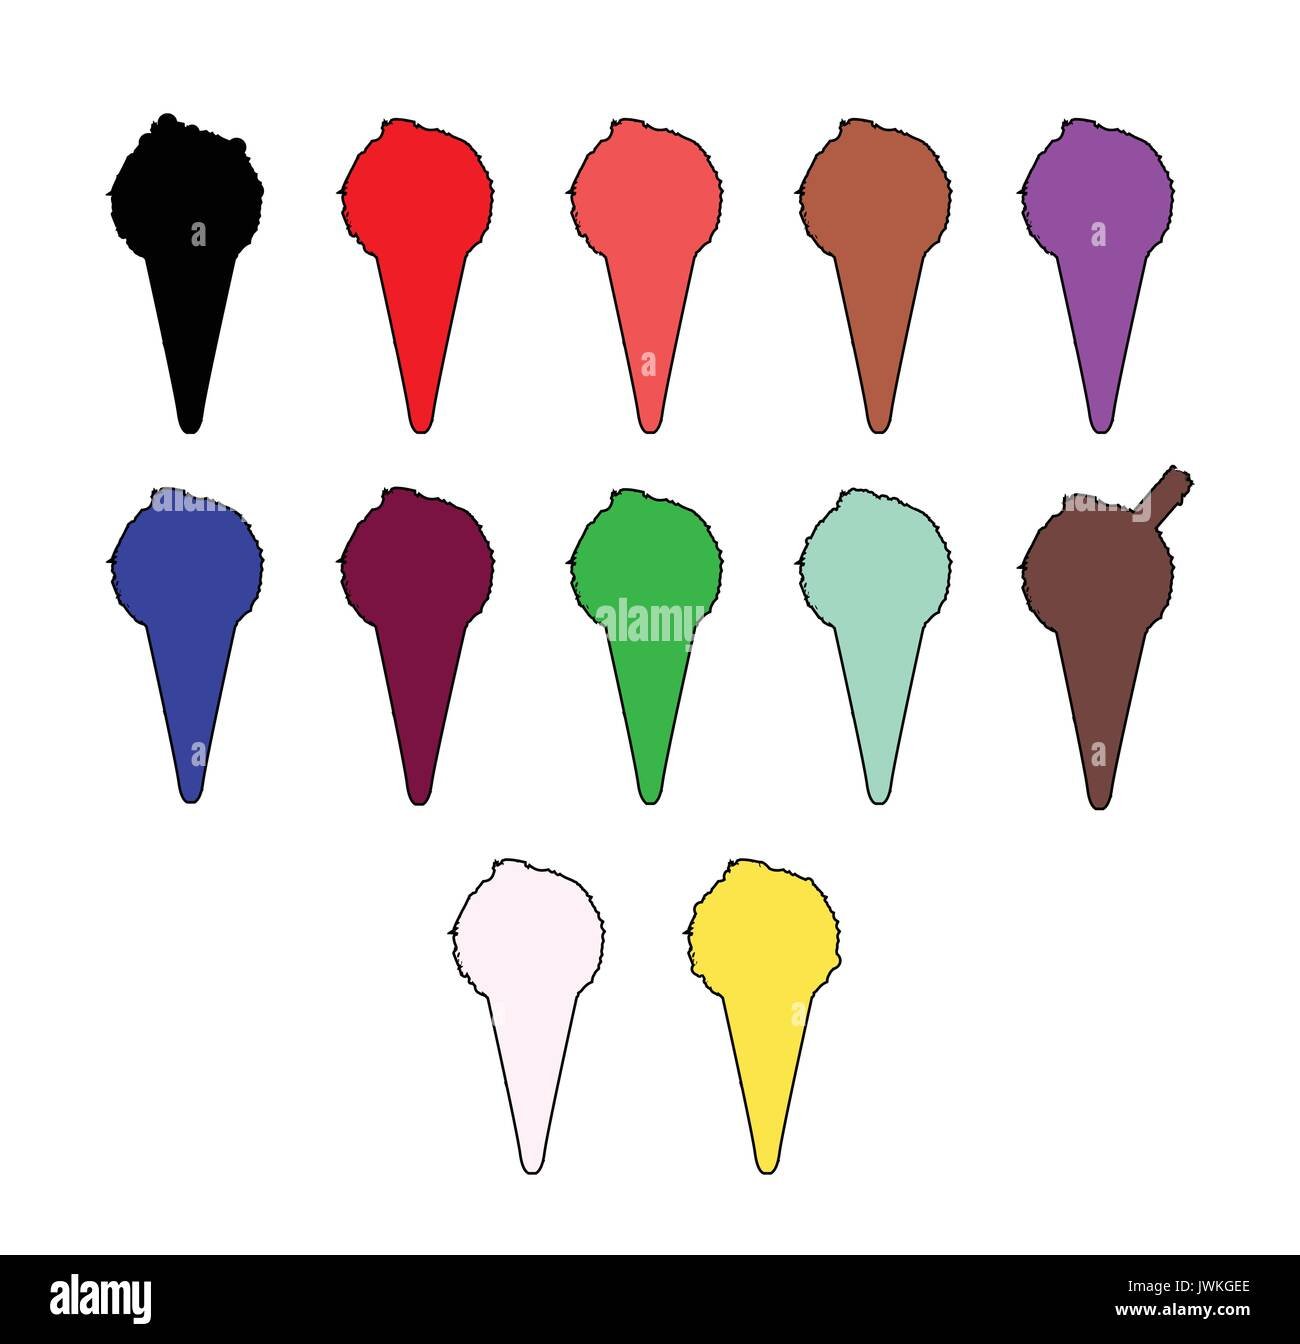 A colection of icecream cone icons on white - Stock Image